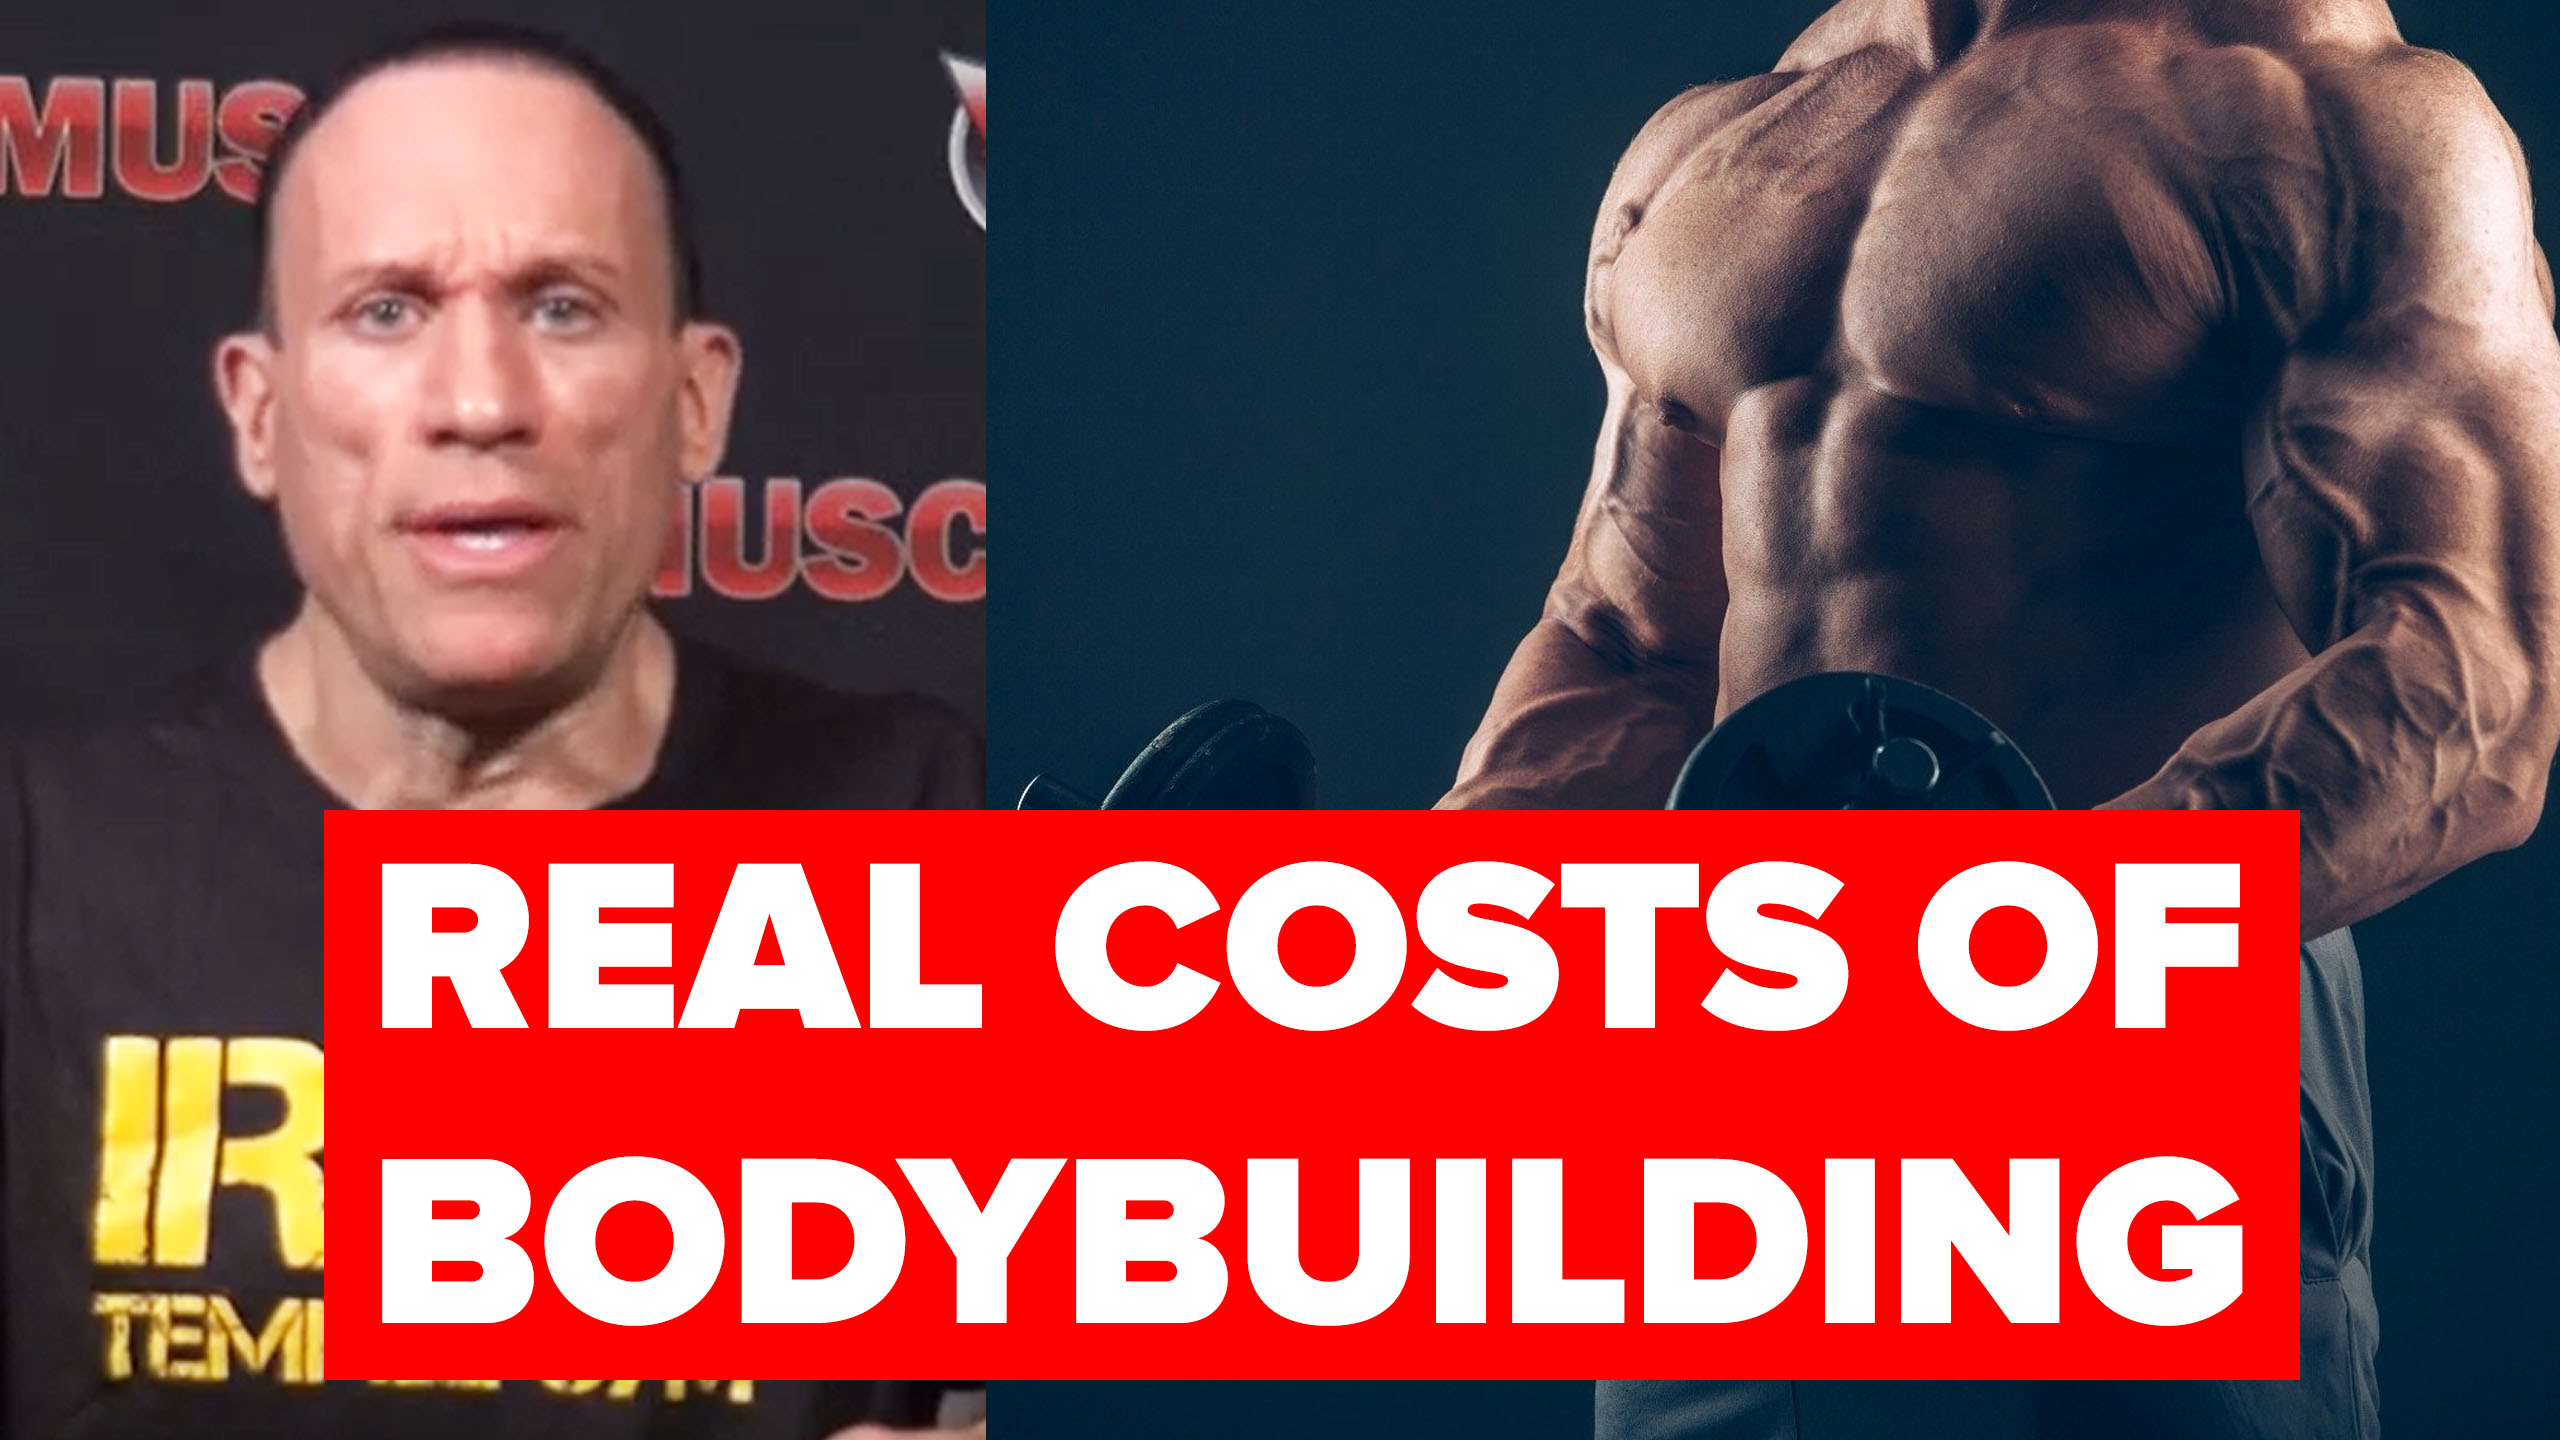 real costs of bodybuilding